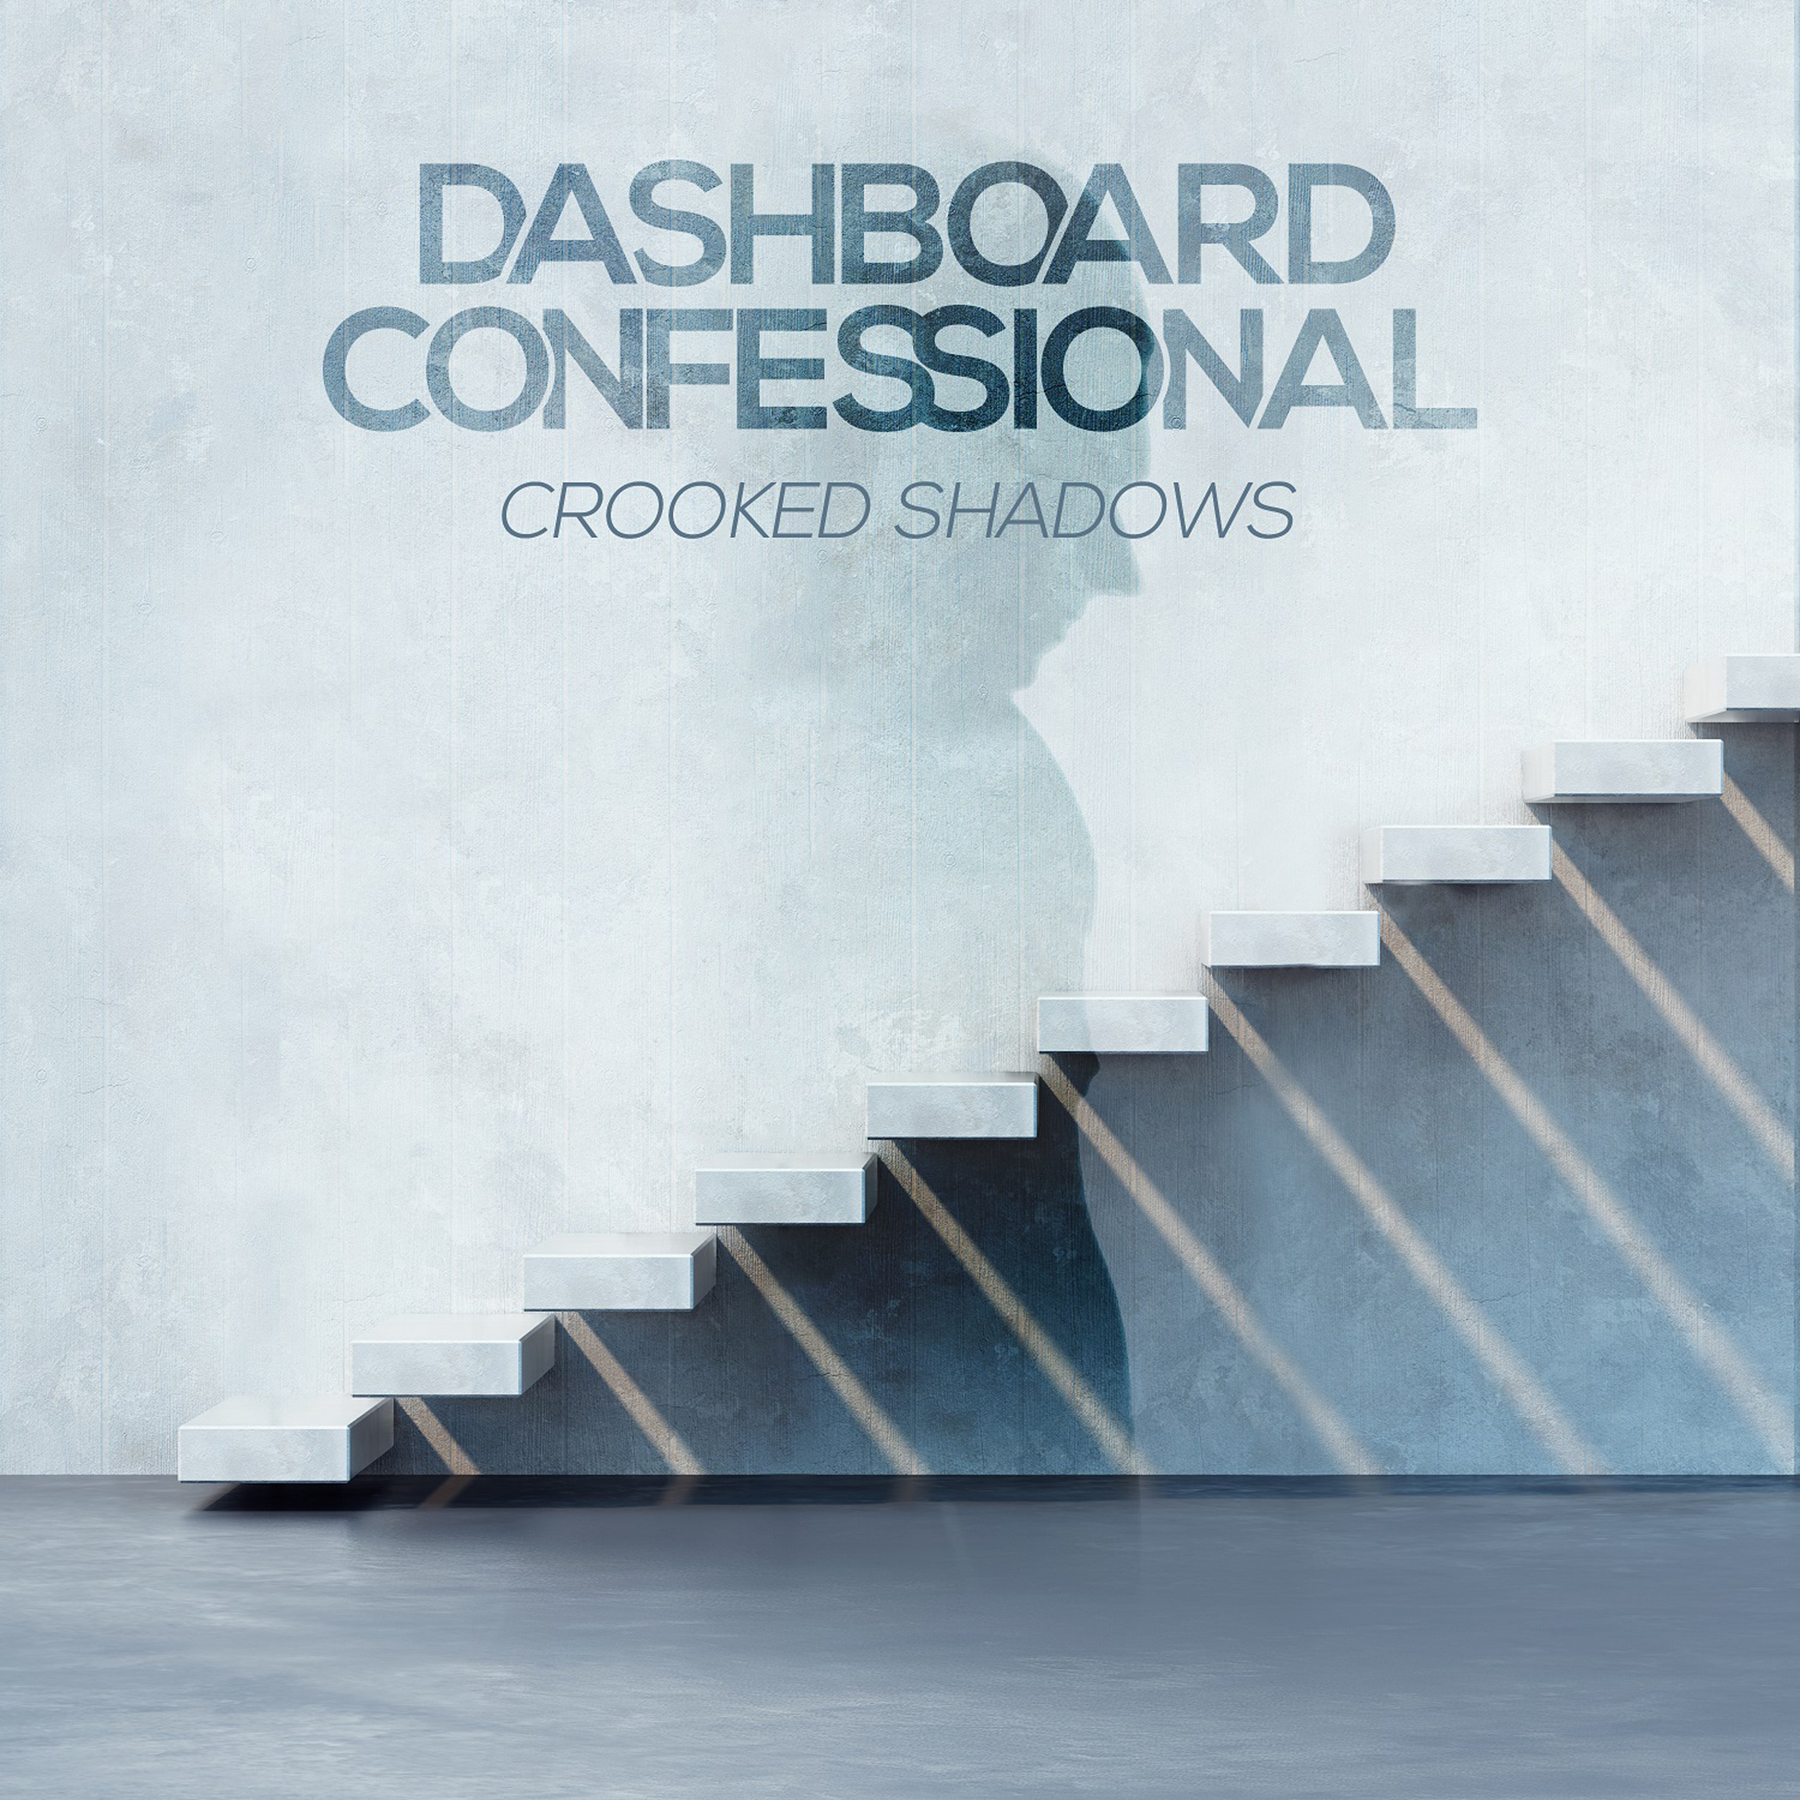 dc crooked shadows 1 Dashboard Confessional announce return with new album, Crooked Shadows, share We Fight: Stream